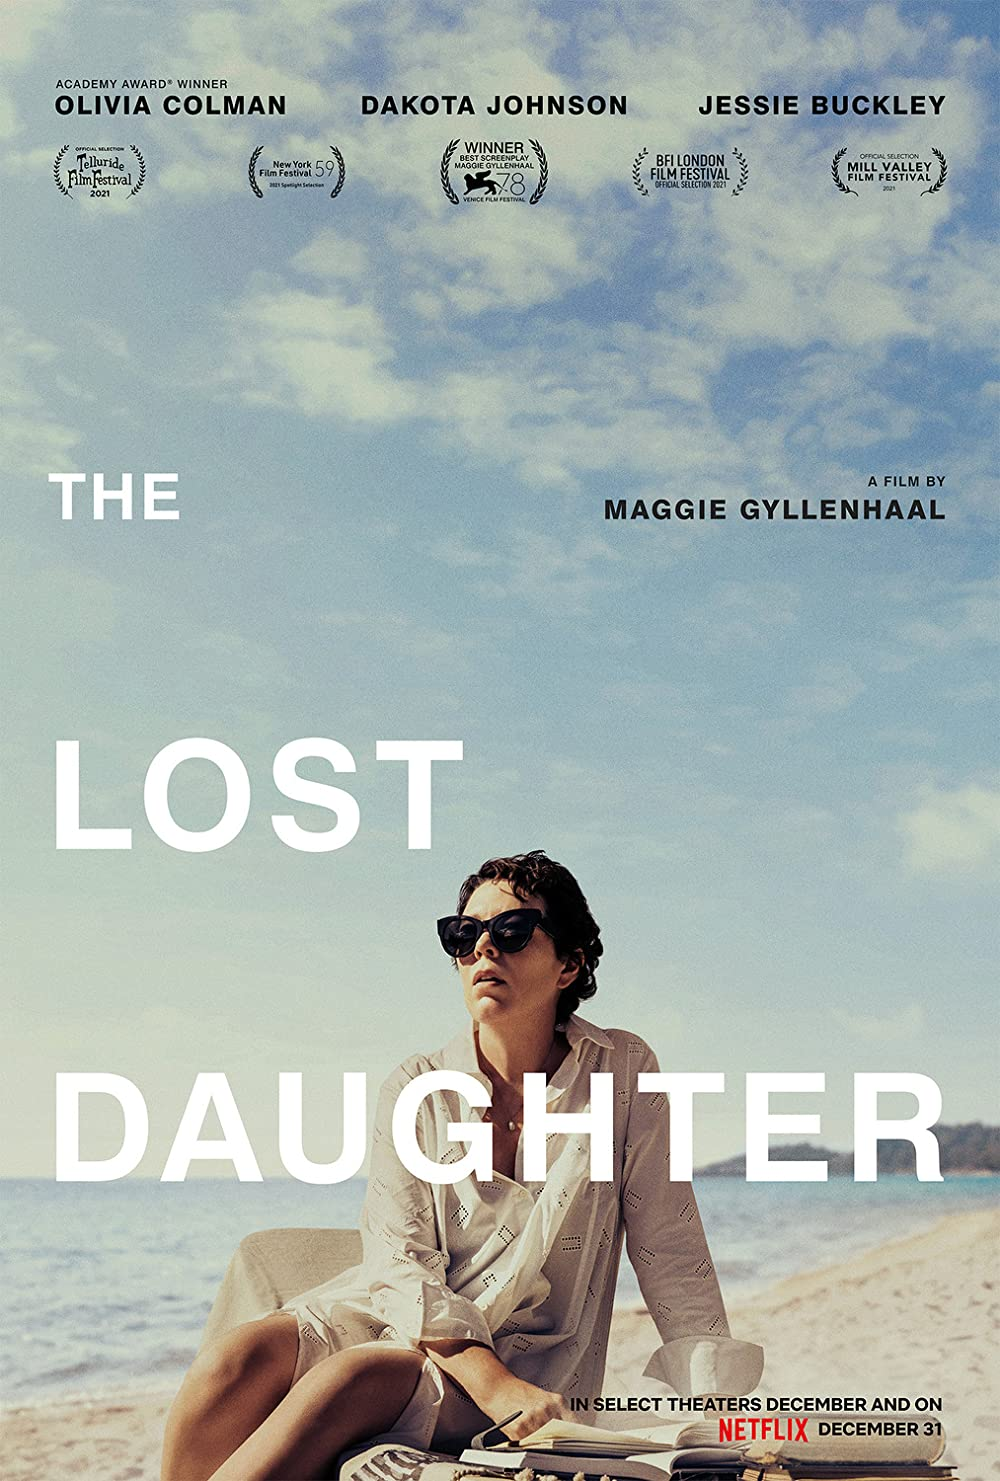 Download Filme The Lost Daughter Qualidade Hd